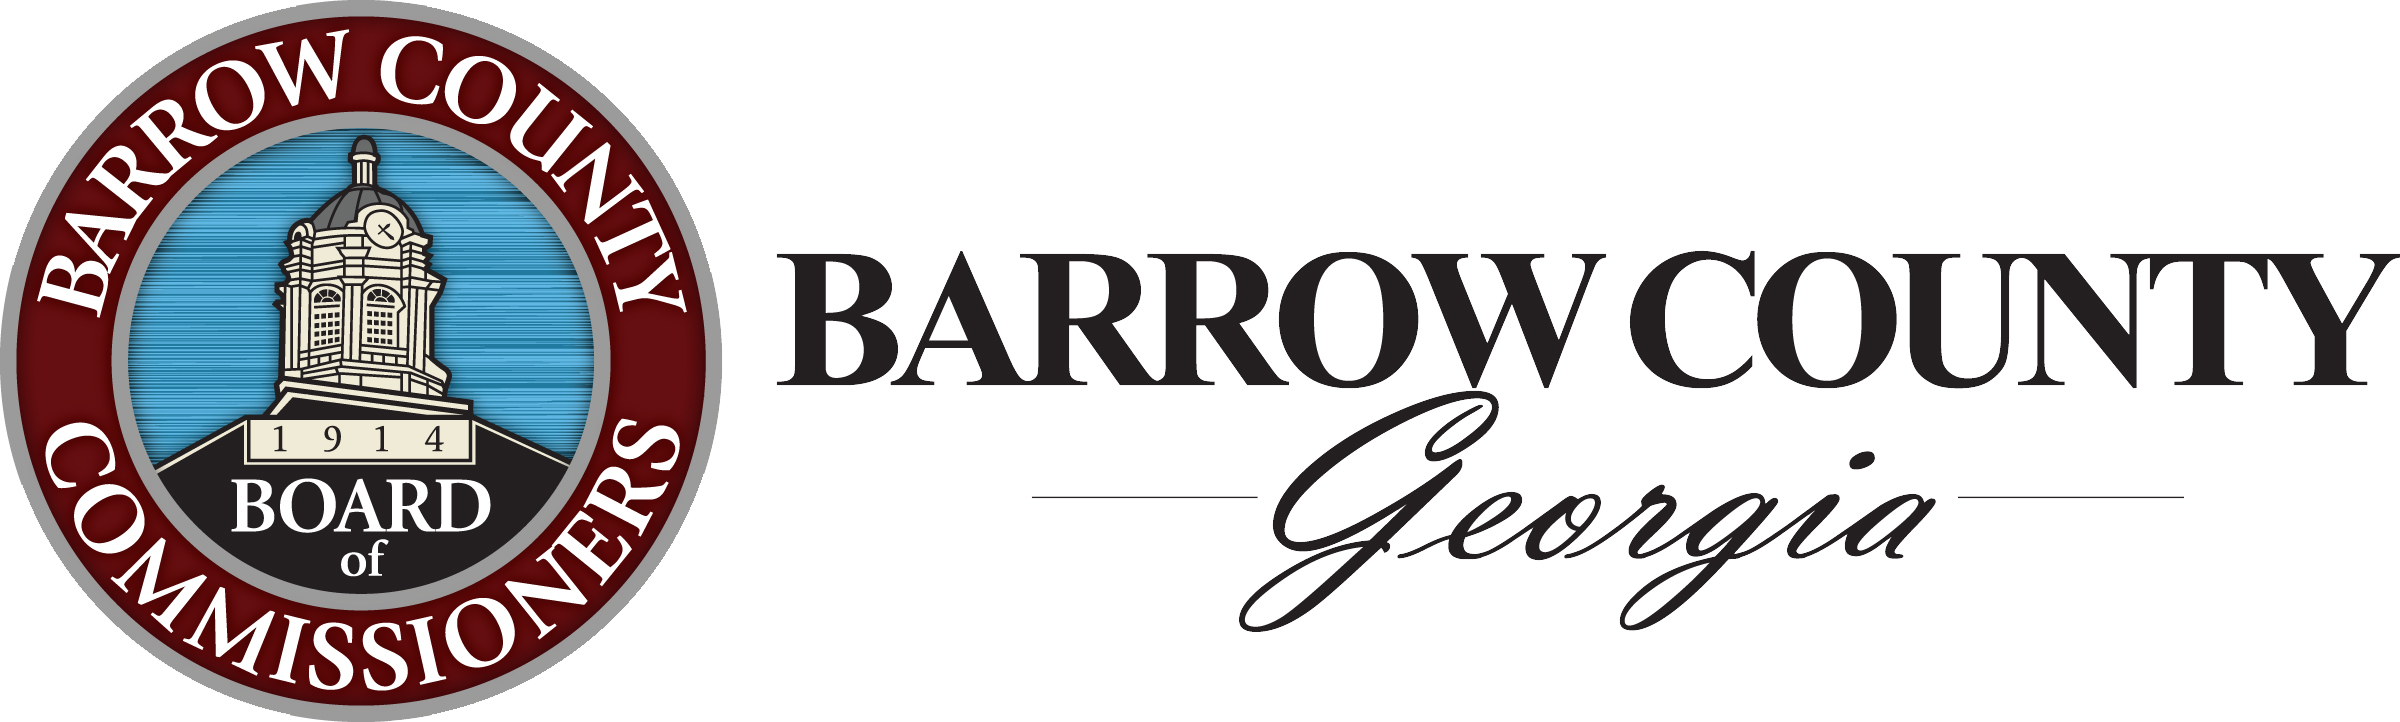 Barrow County Georgia Clerk of Superior Court